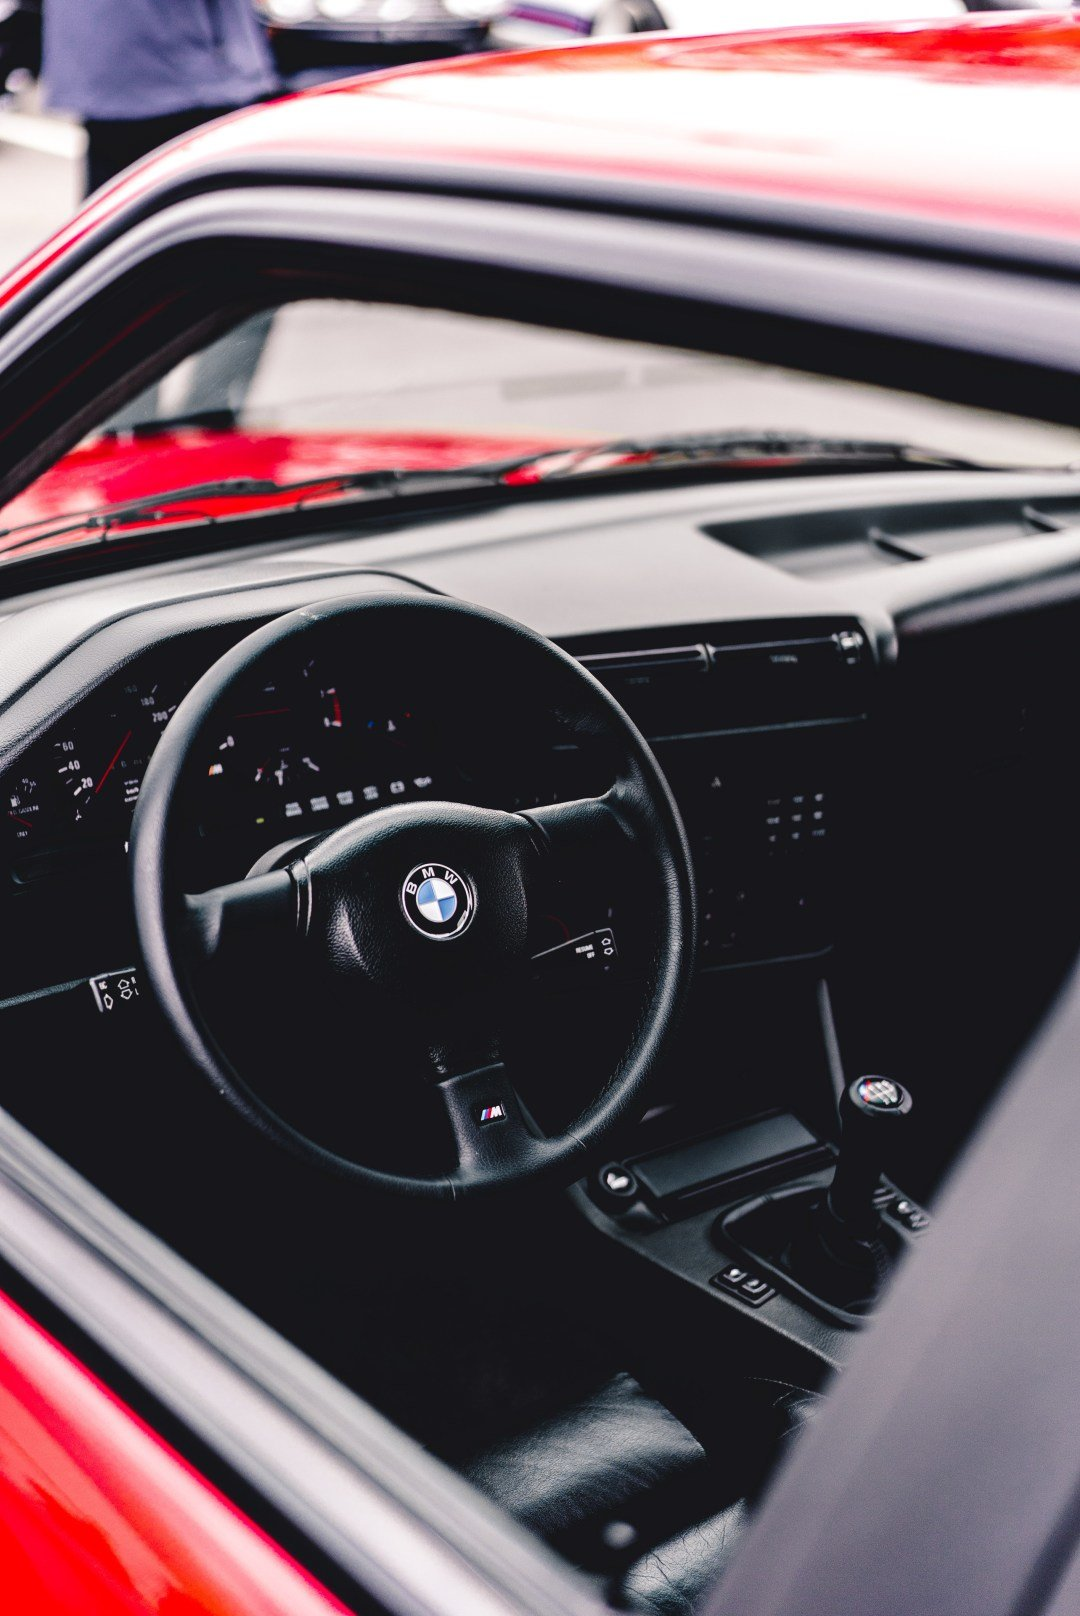 Latest Bmw Pictures Download Free Images On Unsplash Free Download